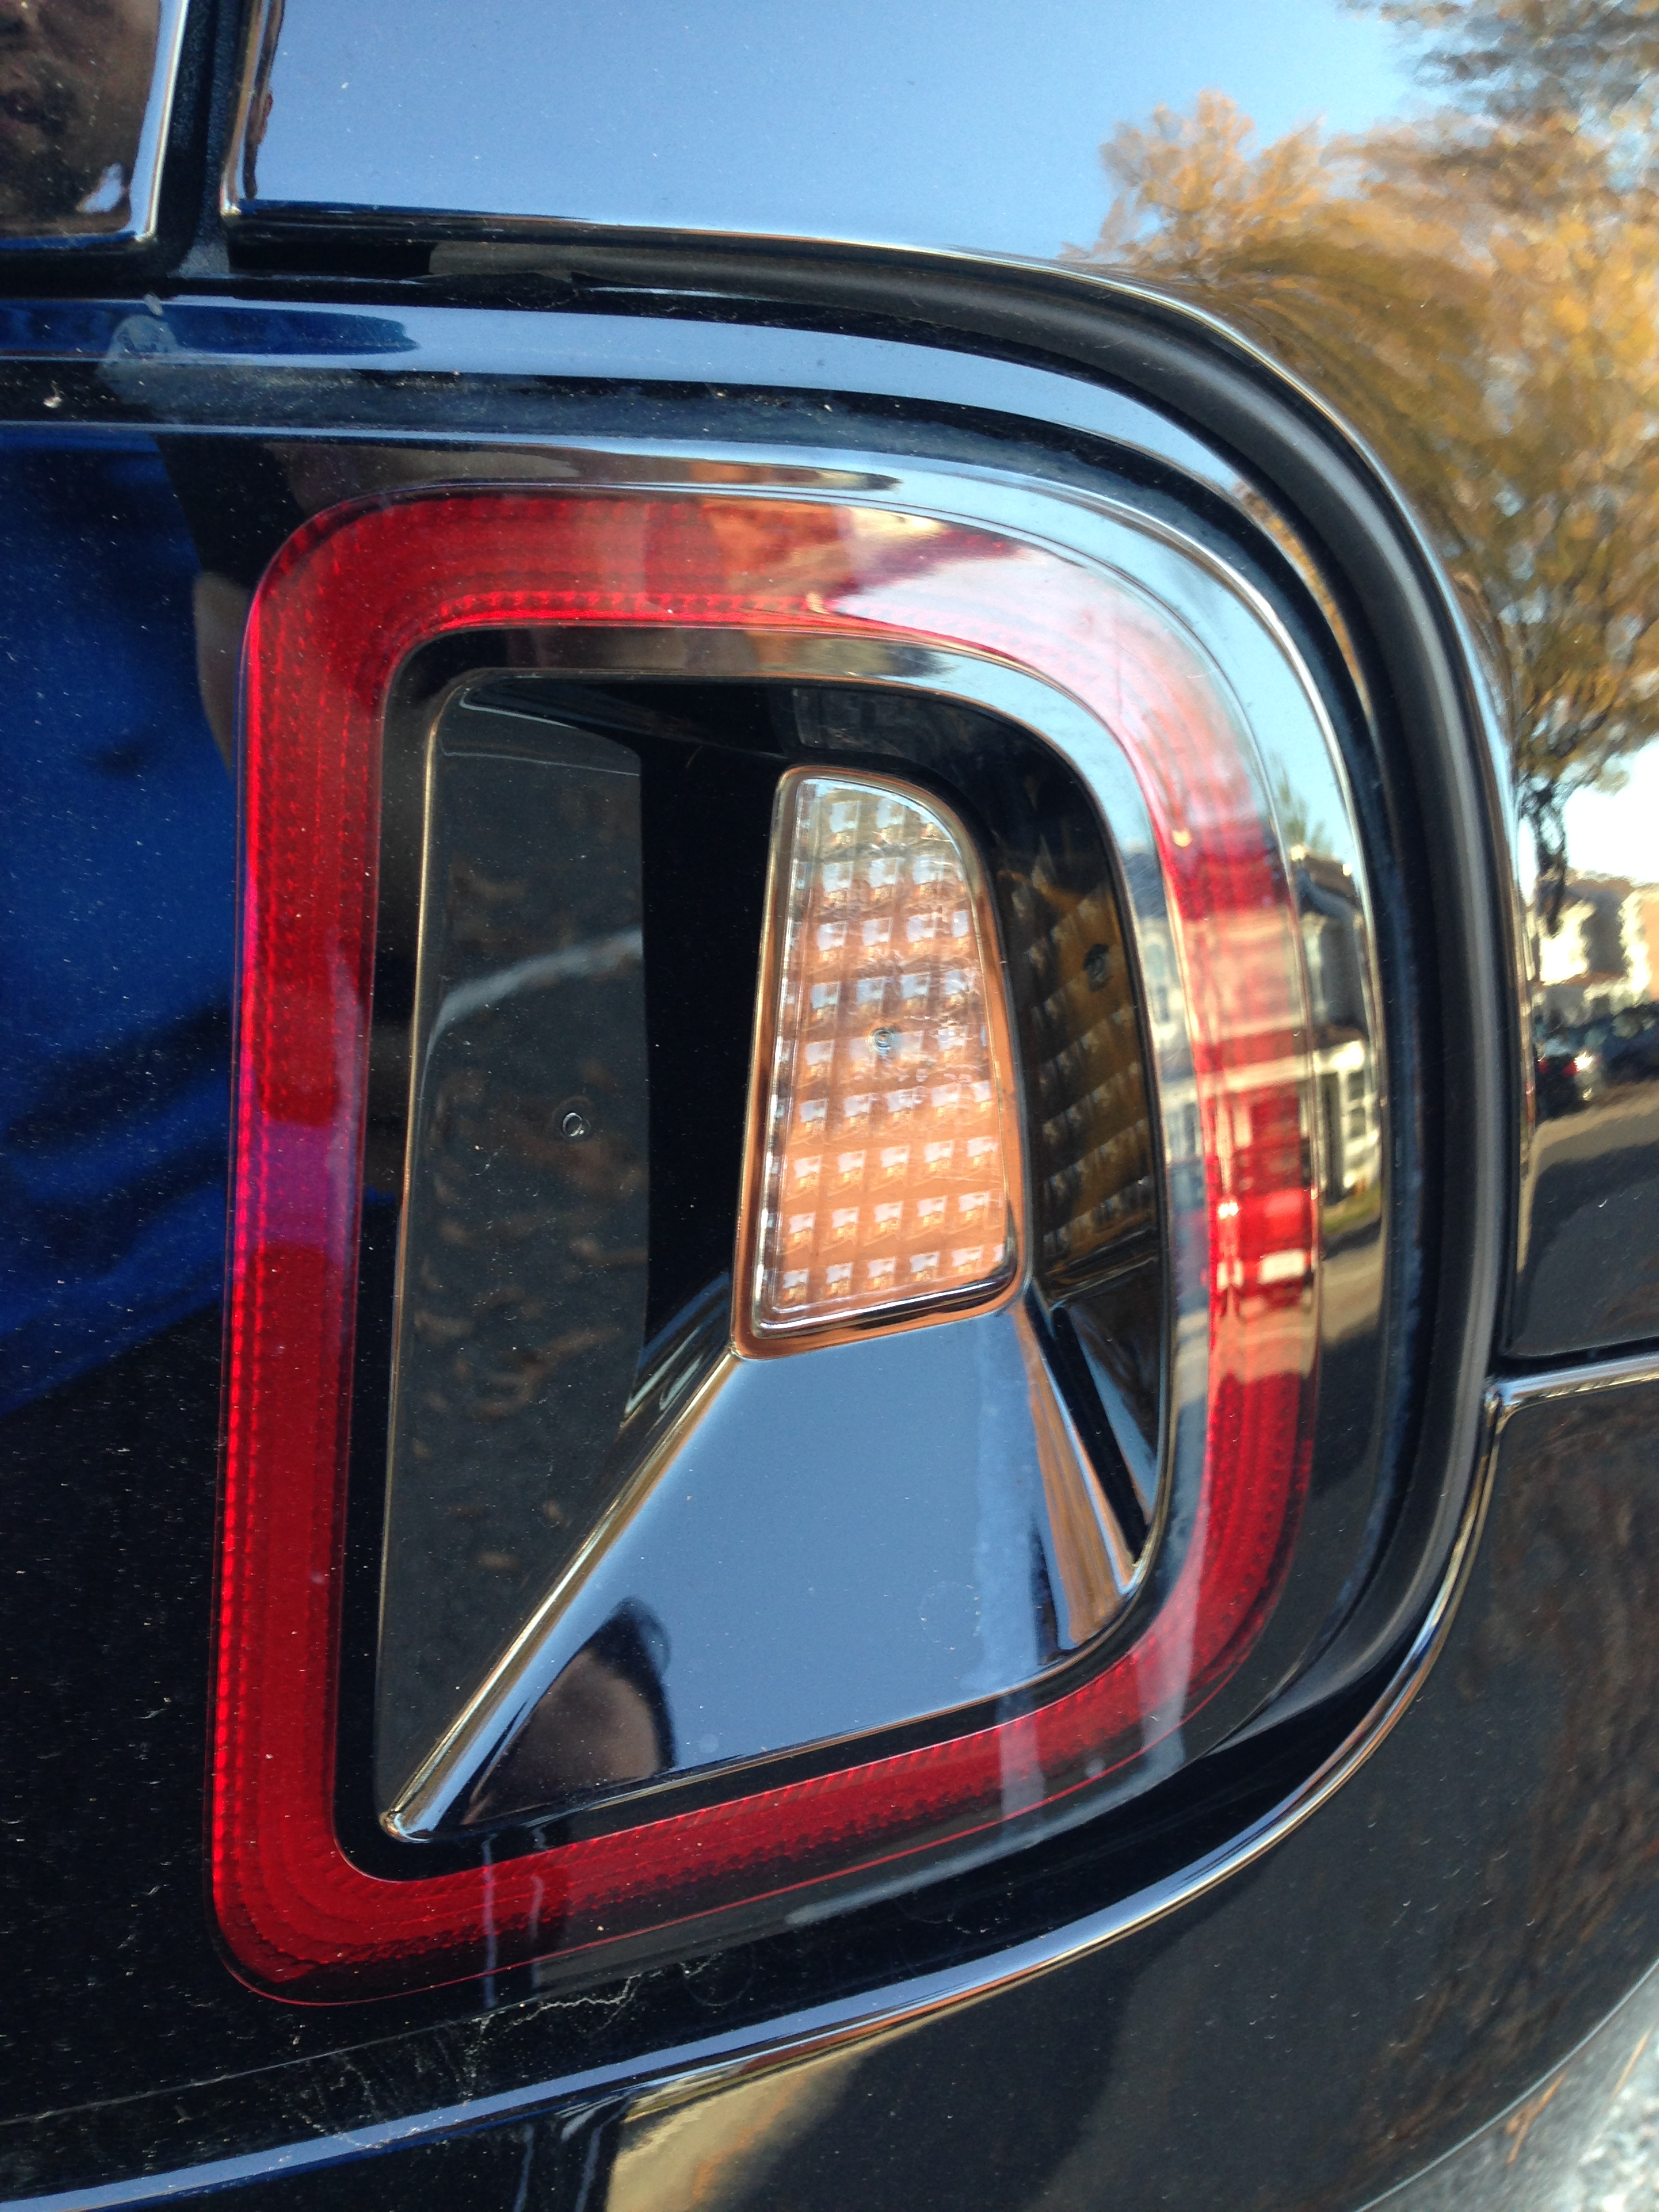 Click image for larger version  Name:Tail light streaks (1).JPG Views:477 Size:1.98 MB ID:169594